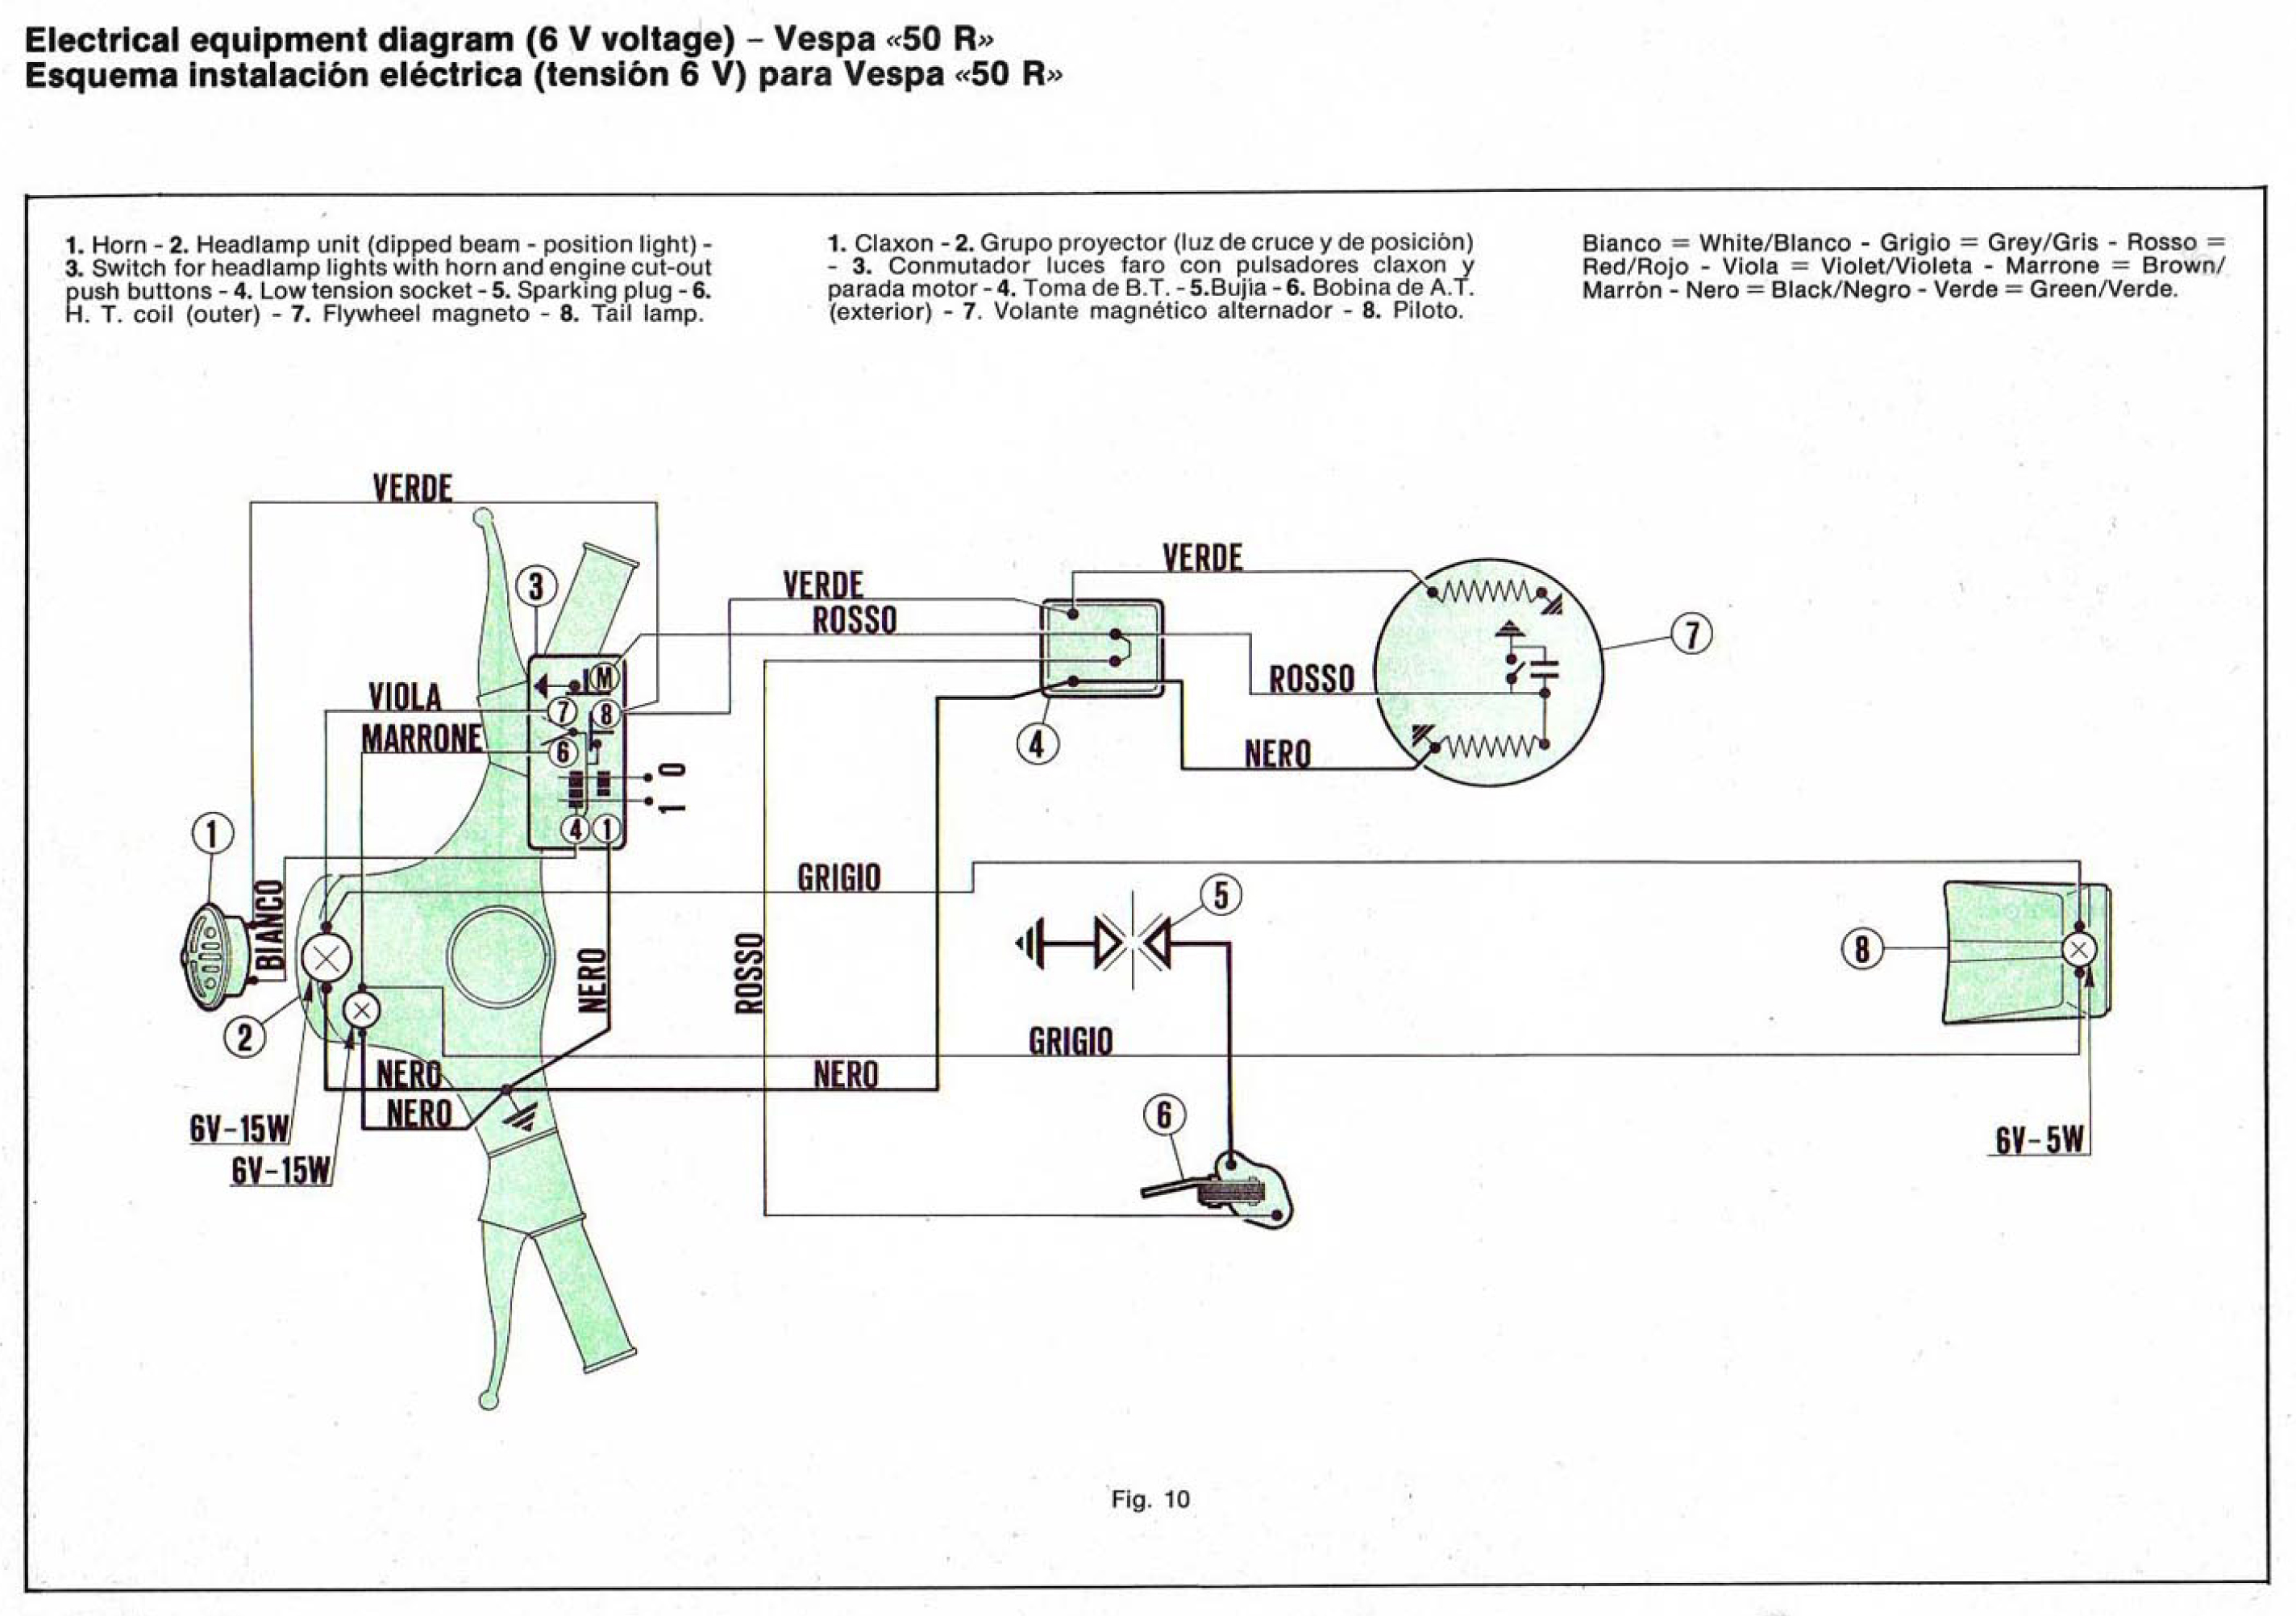 Wiring diagrams wiring diagrams diagram cheapraybanclubmaster Gallery